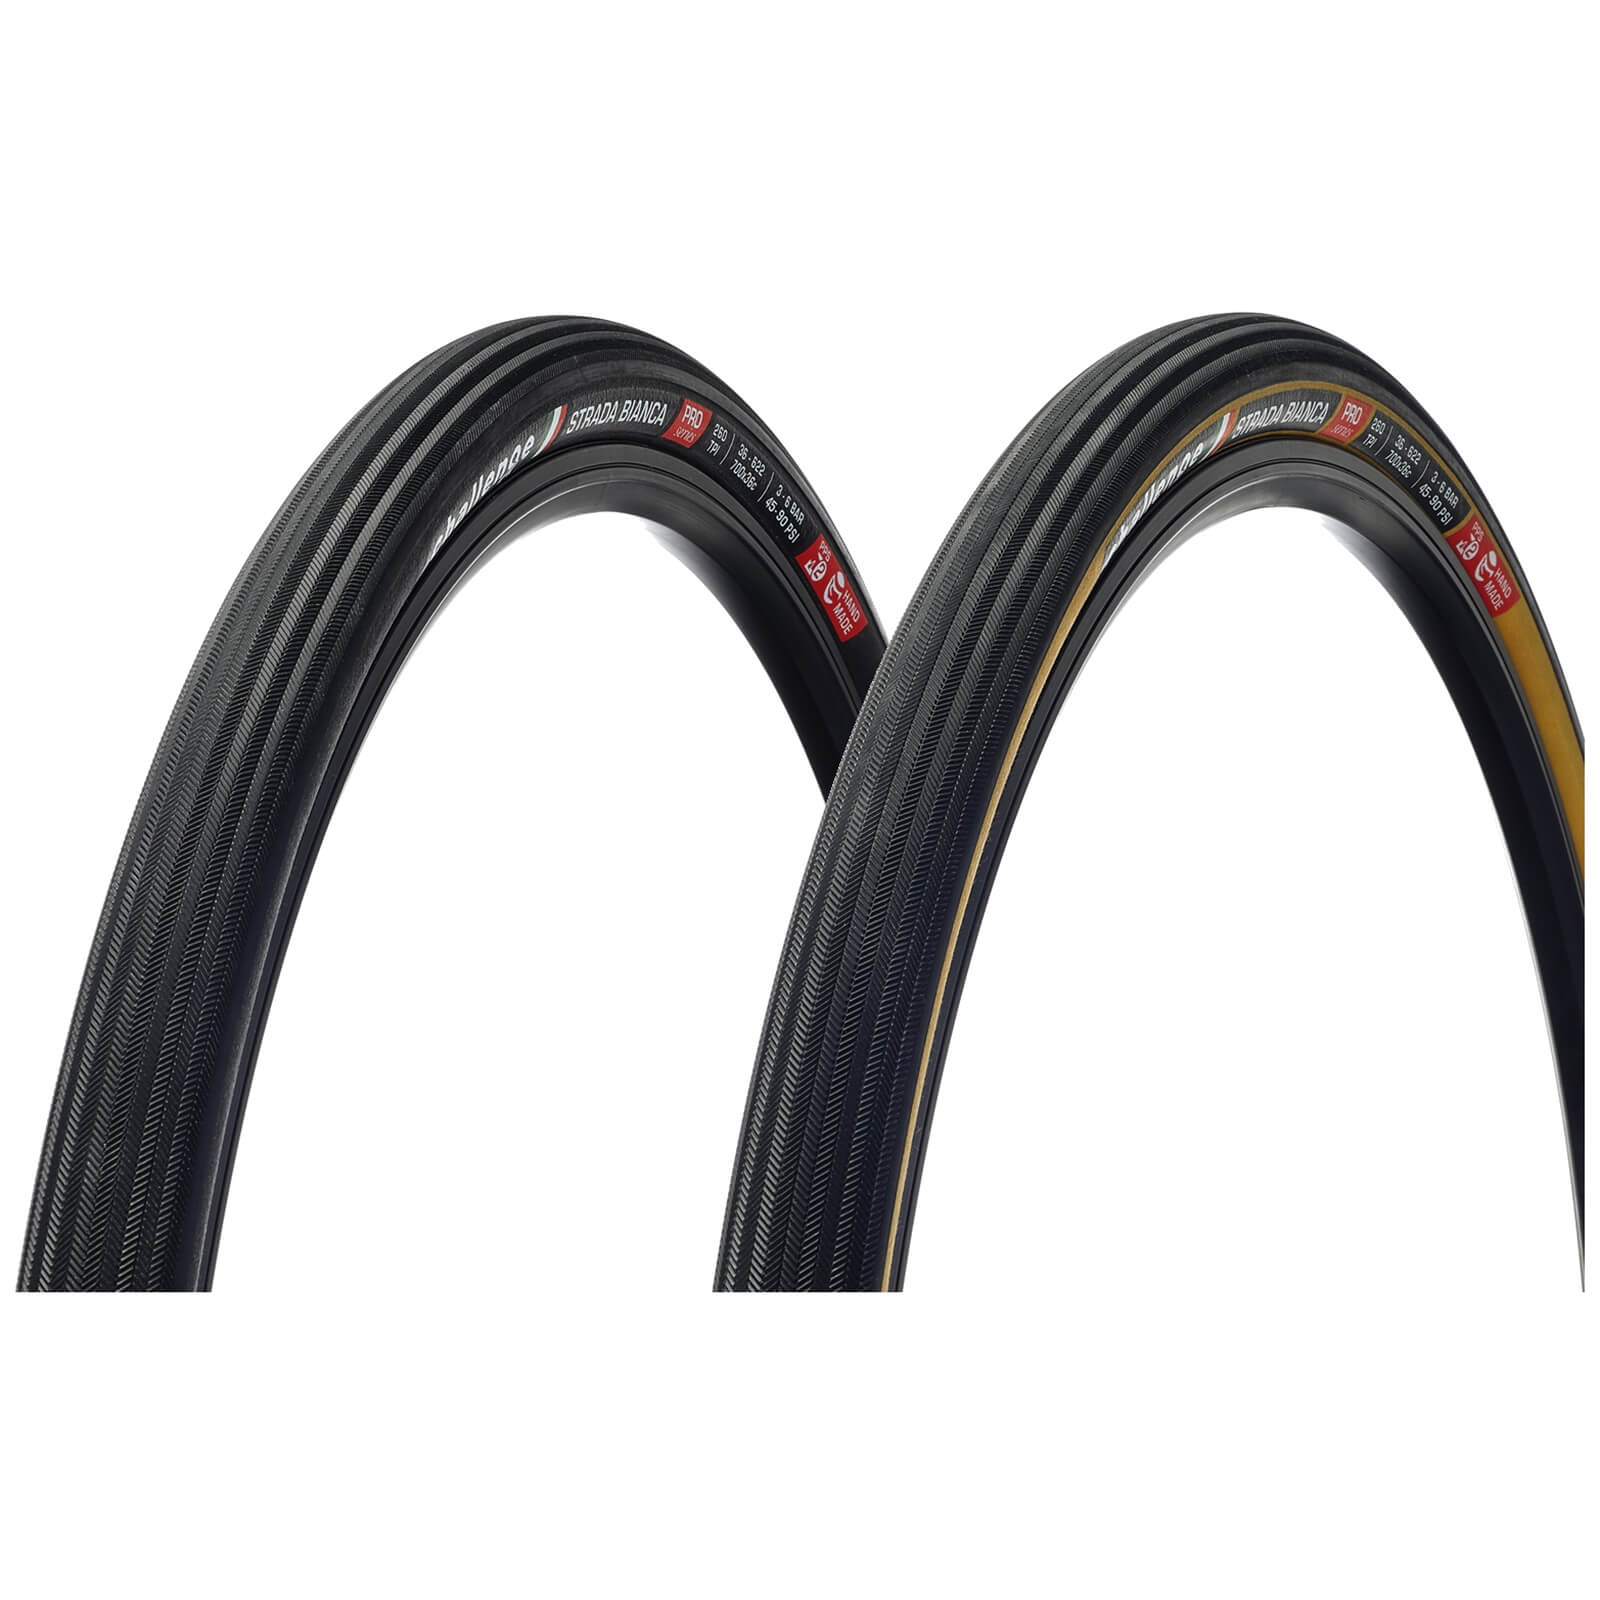 Challenge Strada Bianca 260 TPI Clincher Road Tyre